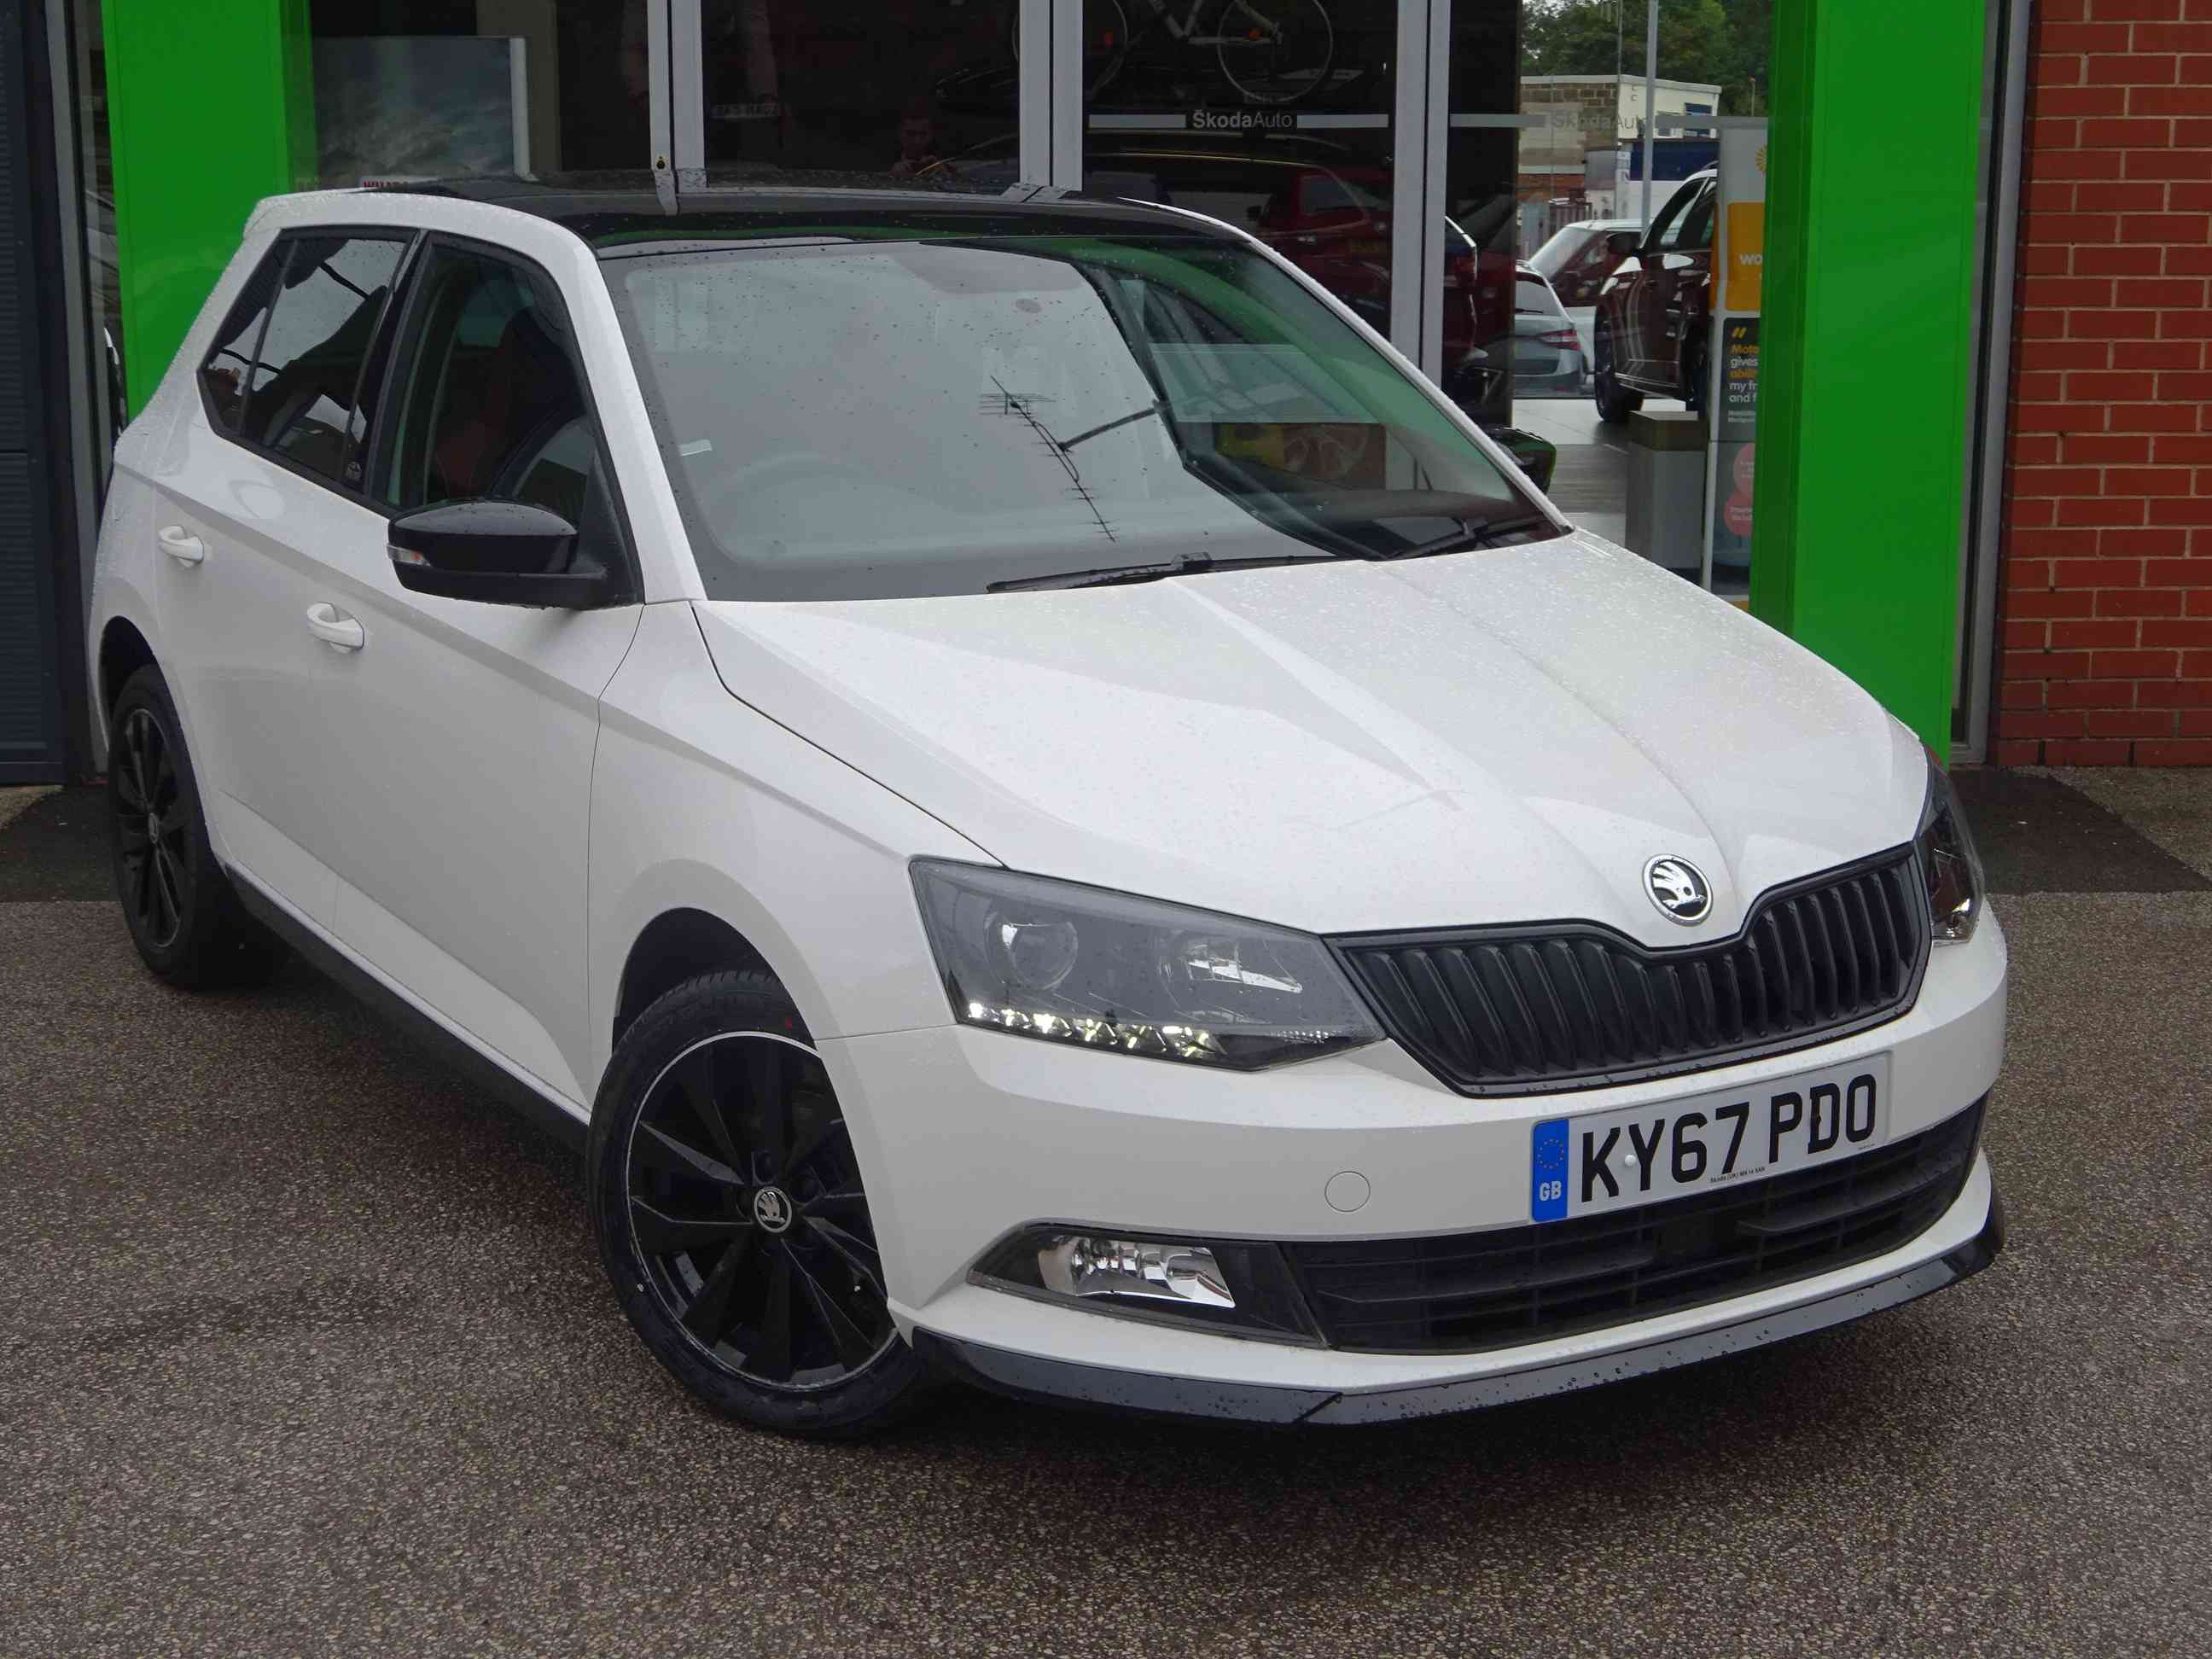 Used Skoda Fabia Monte Carlo Hatchback Cars For Sale Motors Co Uk